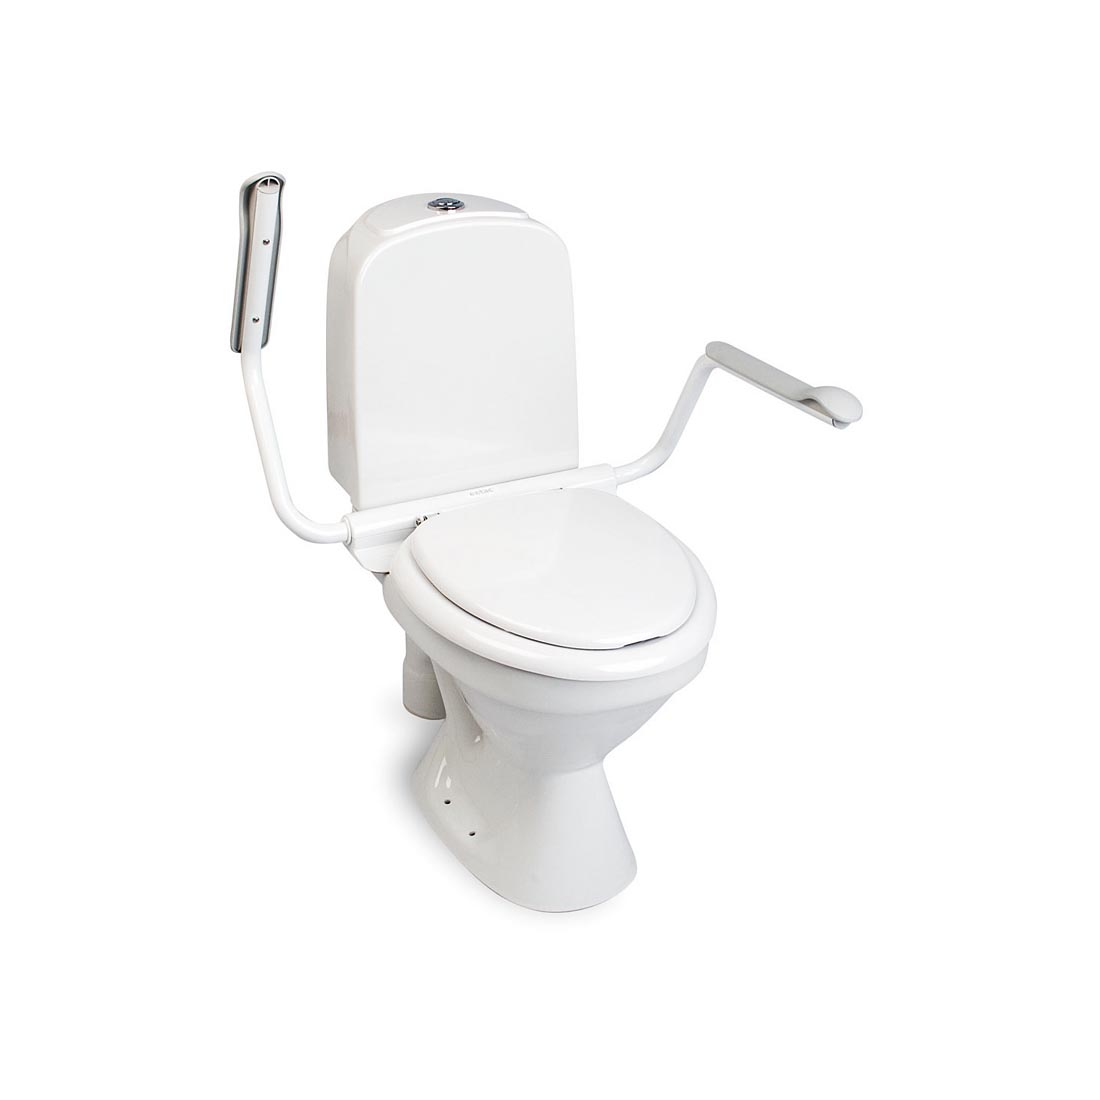 Toilet Support Arms By Etac